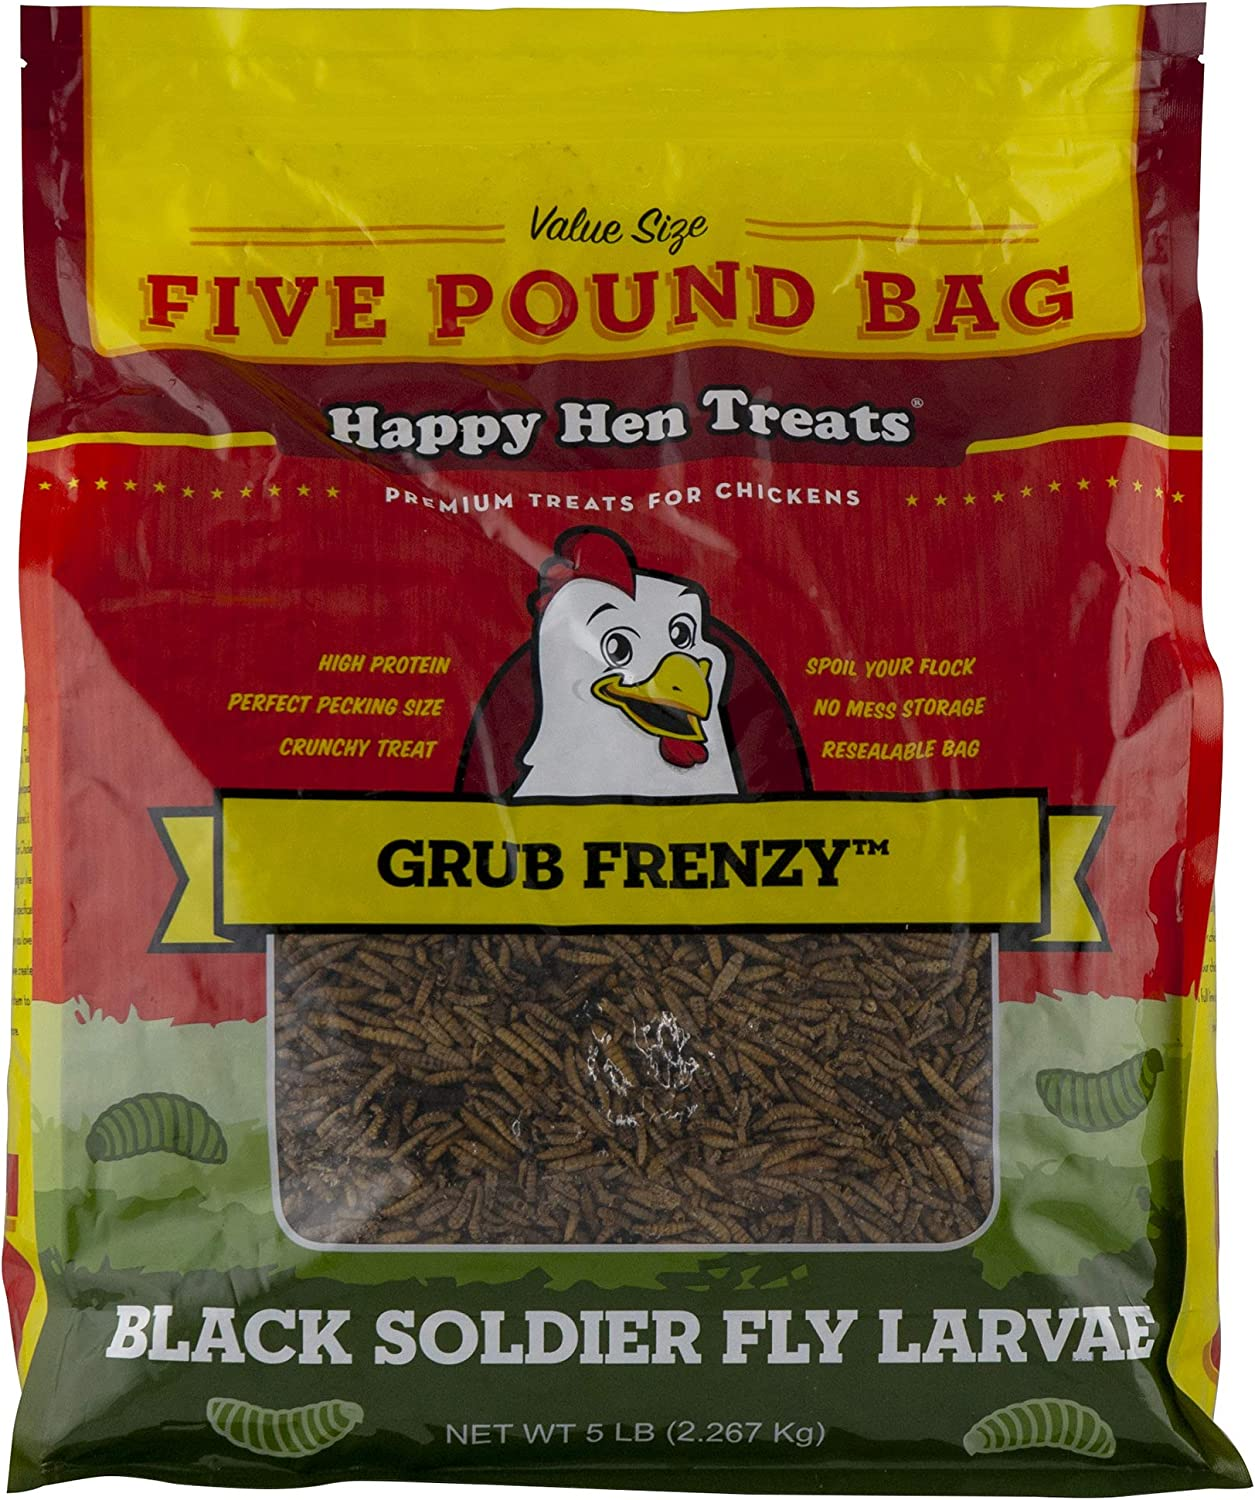 Happy Hen Treats Mealworm Frenzy, 5 Pounds, All Natural Dried Mealworms for Backyard Poultry